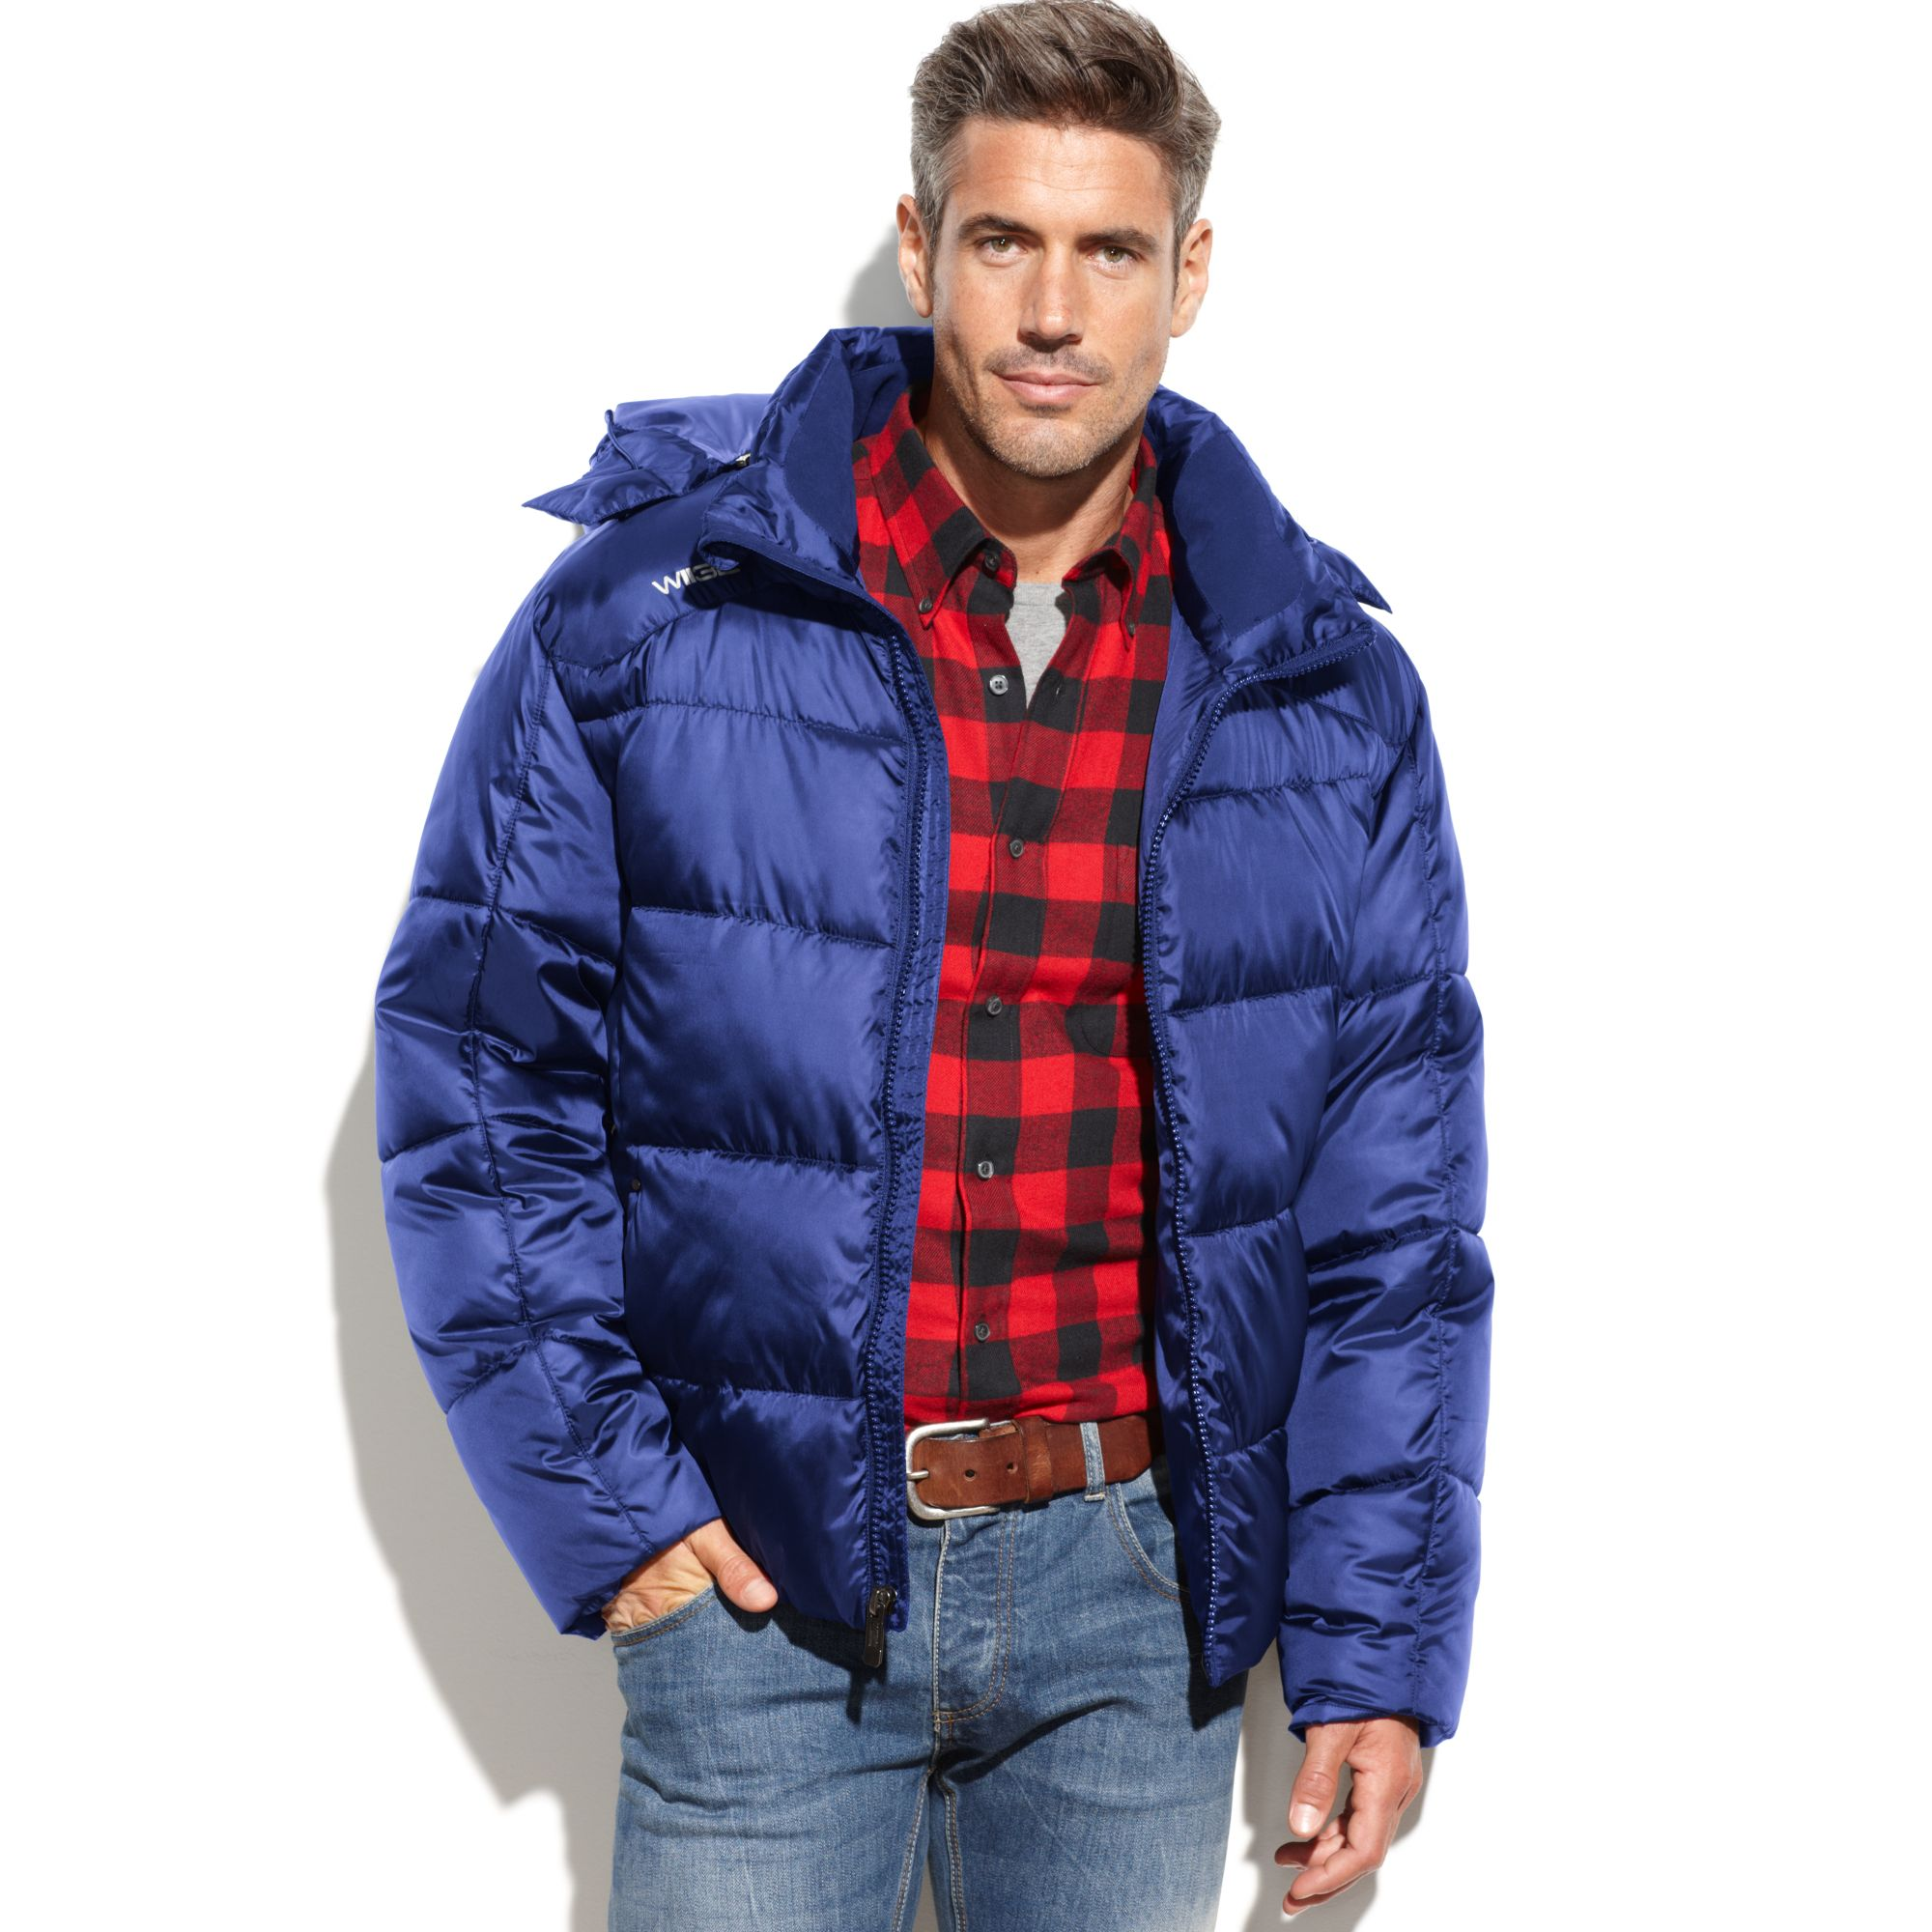 Weatherproof 32 Degrees Coat Micro Tech Quilted Puffer